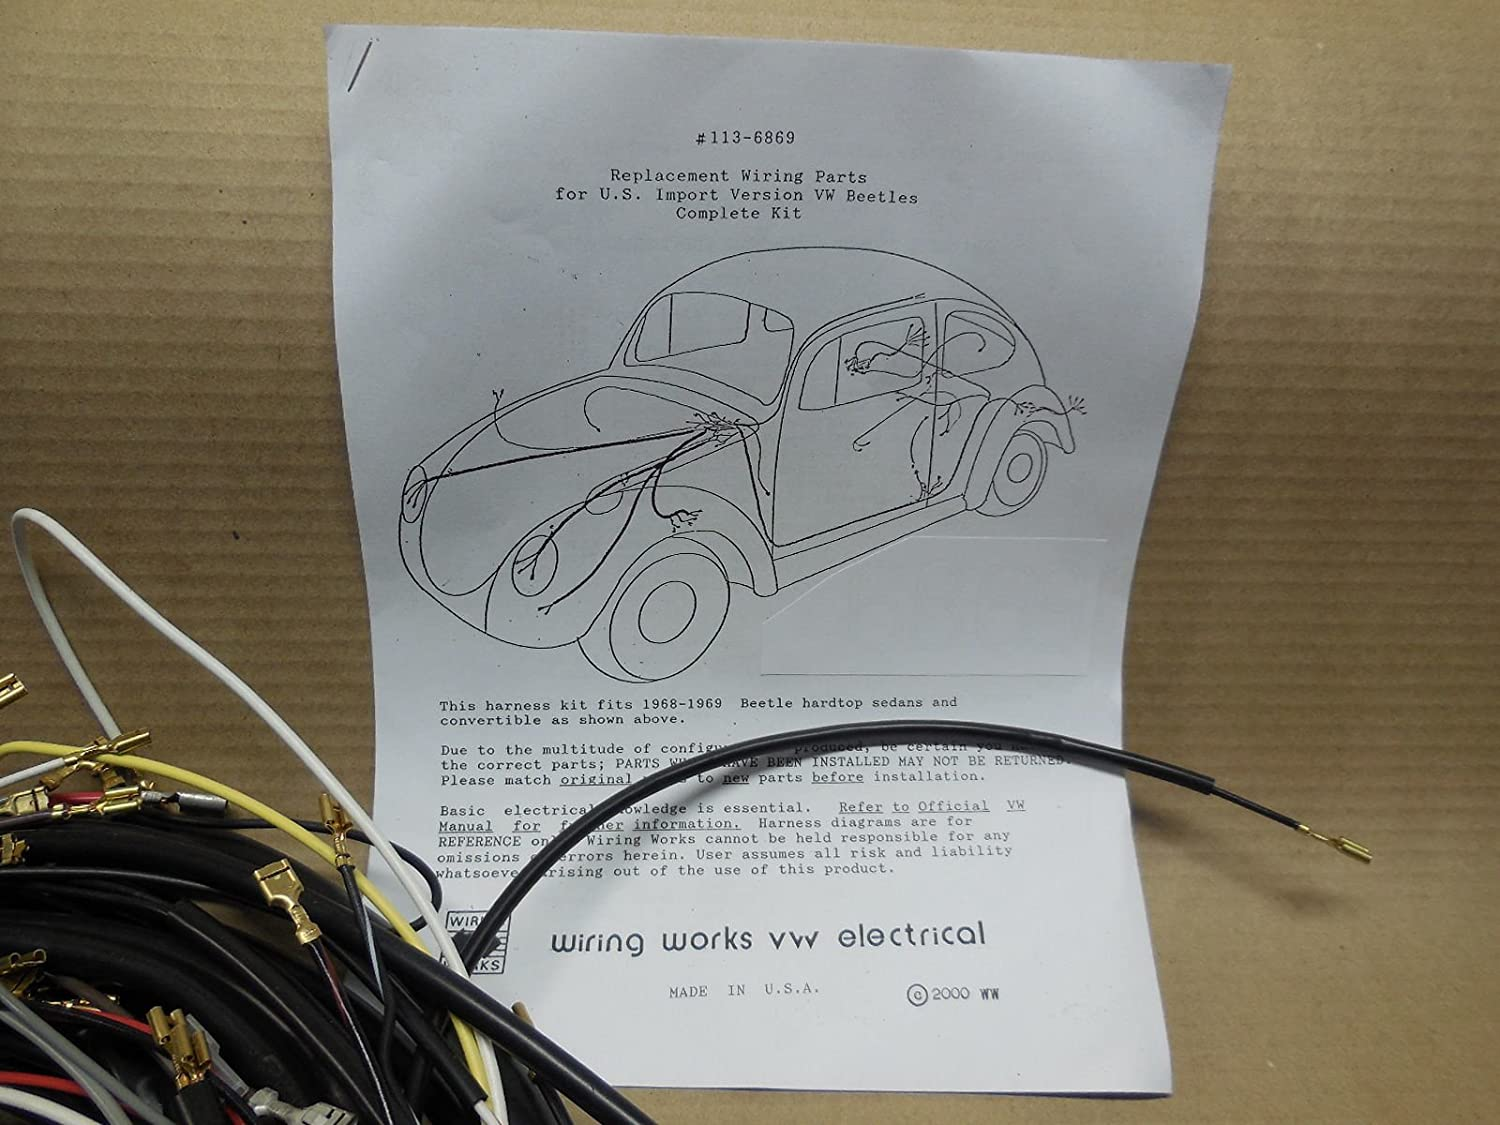 Amazon 19621964 Vw Volkswagen Std Bug Sedan T1 Wiring Works. Amazon 19621964 Vw Volkswagen Std Bug Sedan T1 Wiring Works Main Harness Kit Usa Made Automotive. Volkswagen. Vw Bug Wiring Harness Kit At Scoala.co